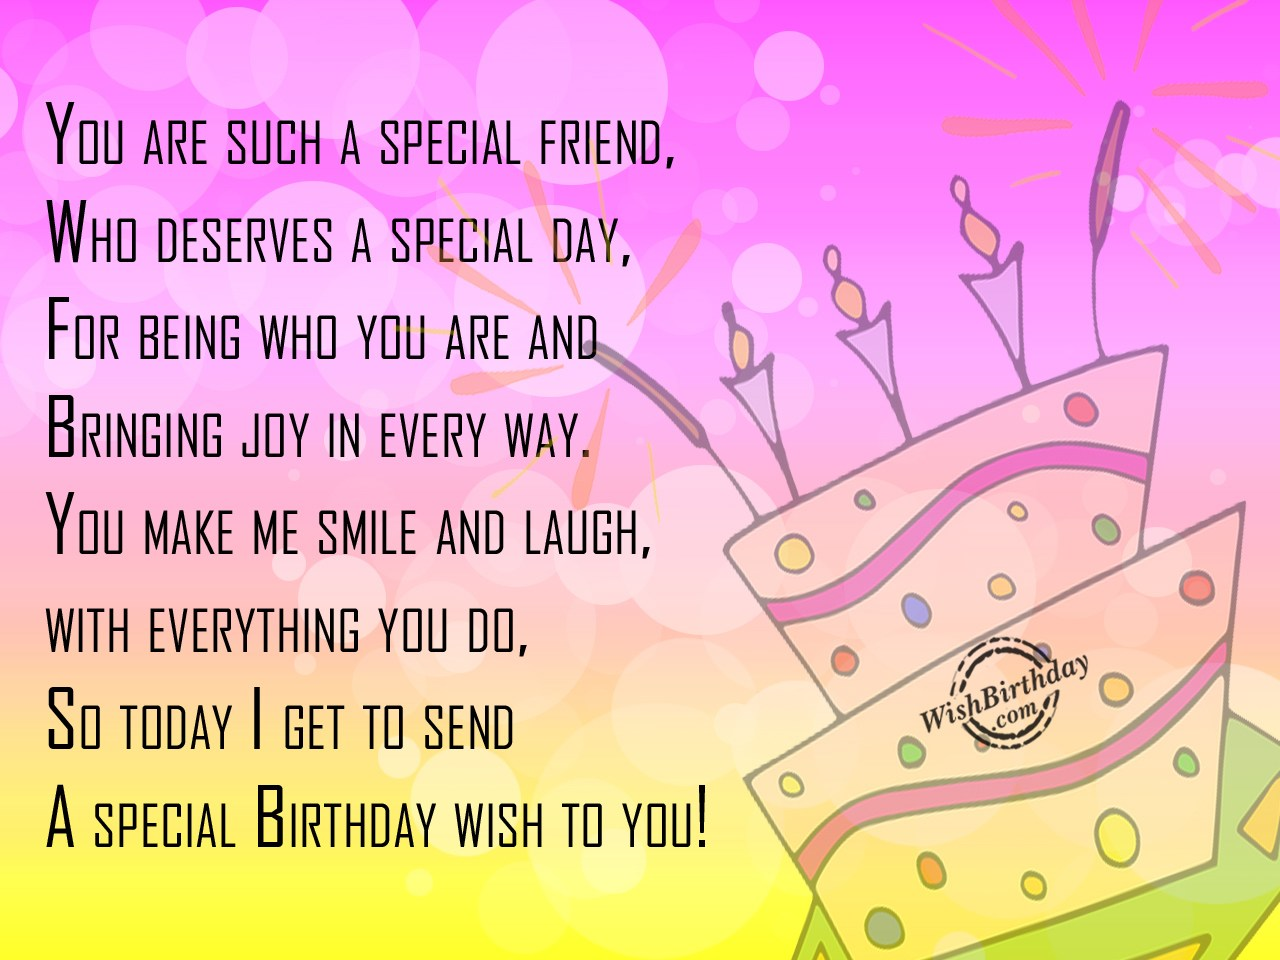 best birthday wish for best friend ever ; bday-wishes-for-friend-5